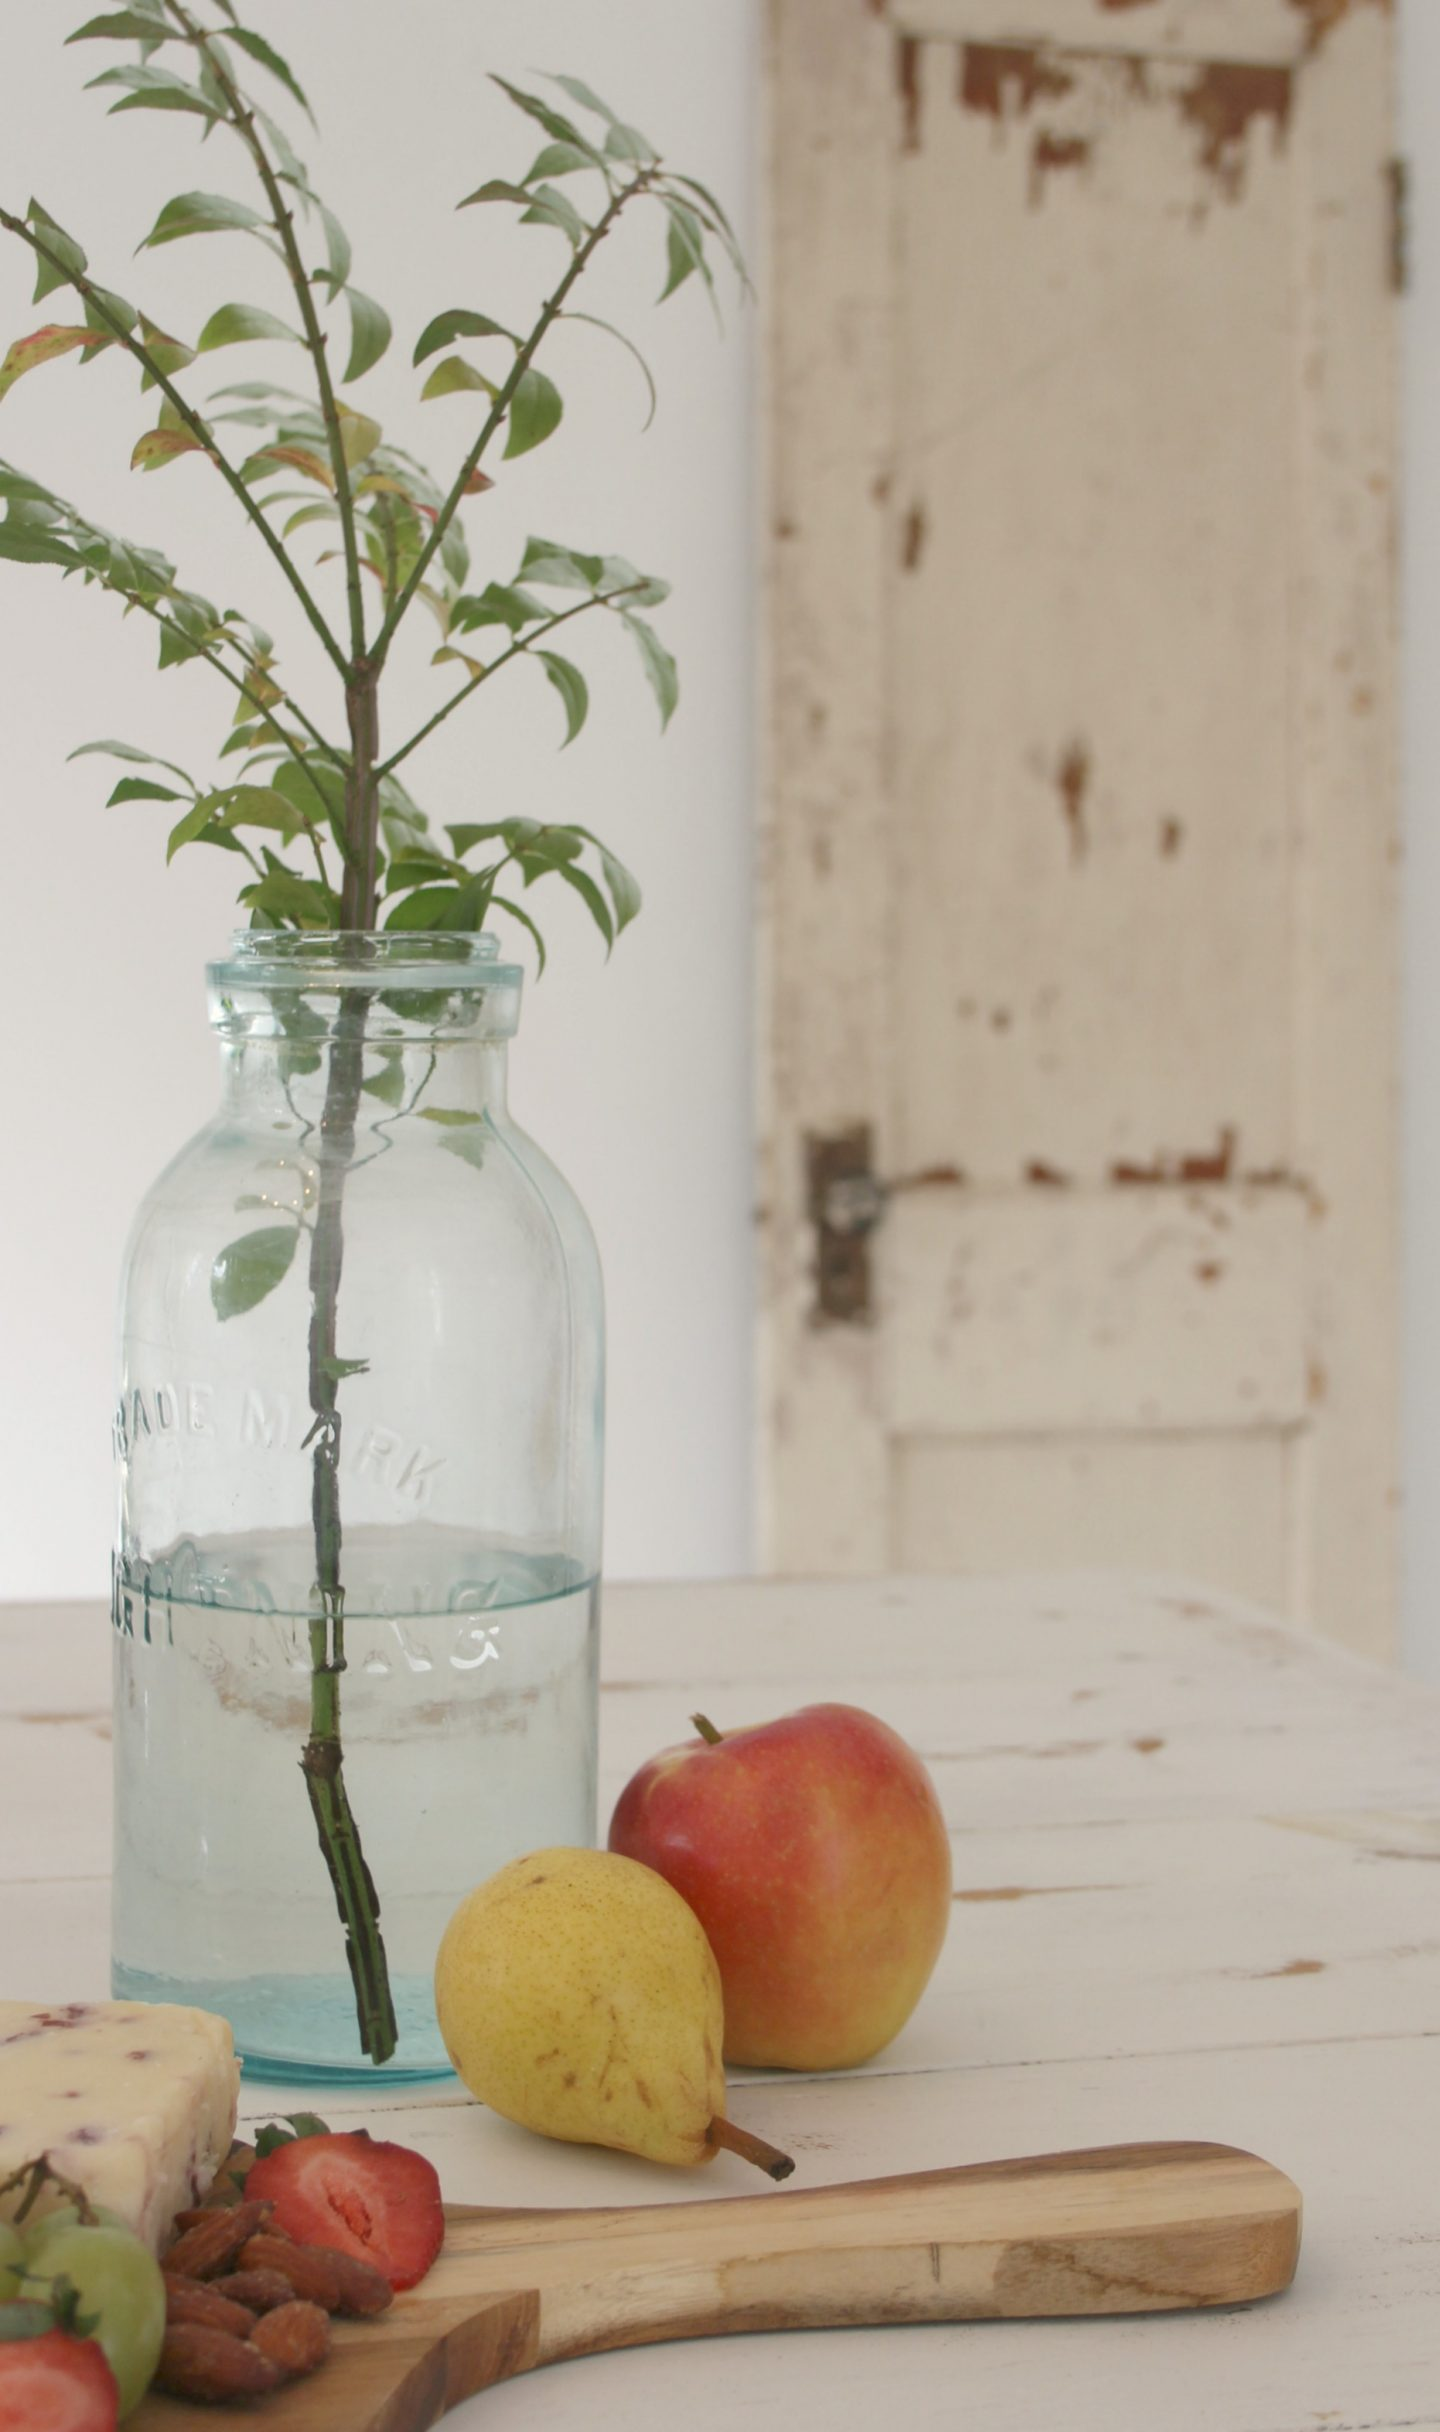 Peaceful, soft farmhouse still life with green mason jar, fruit, and a peely painted door - Hello Lovely Studio. FALL In Love With Autumn: Pre-PEAR Yourself for Yummy Pear Inspiration Ahead!